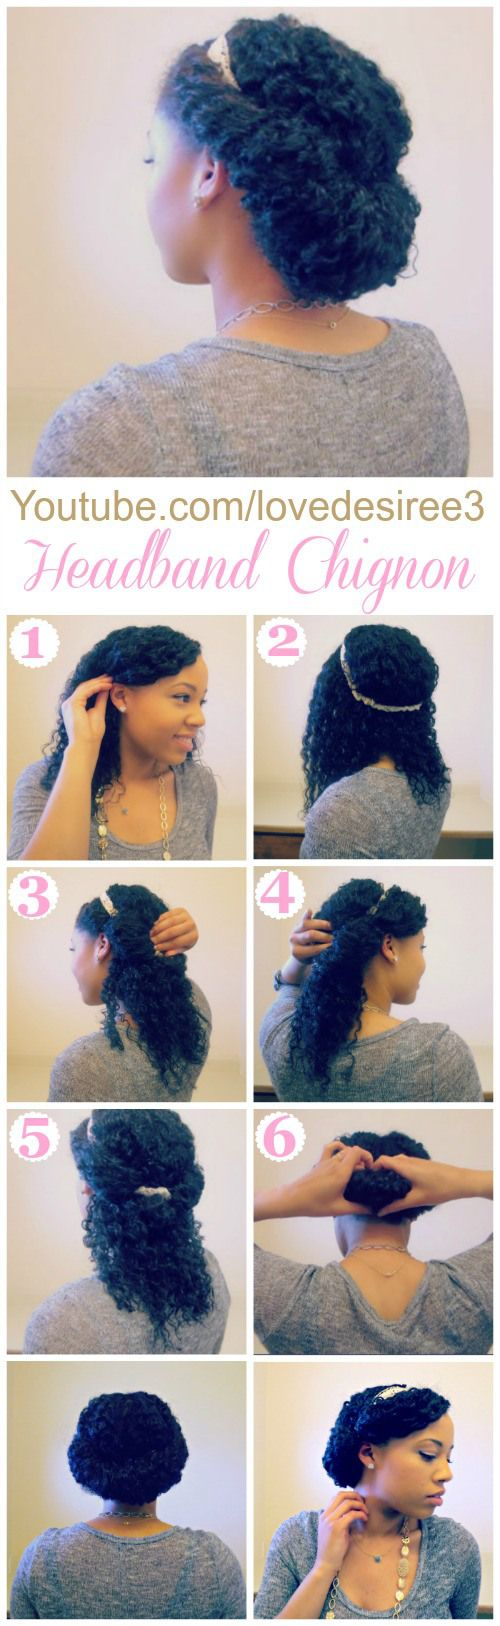 best penteado images on pinterest hairstyle ideas coiffure